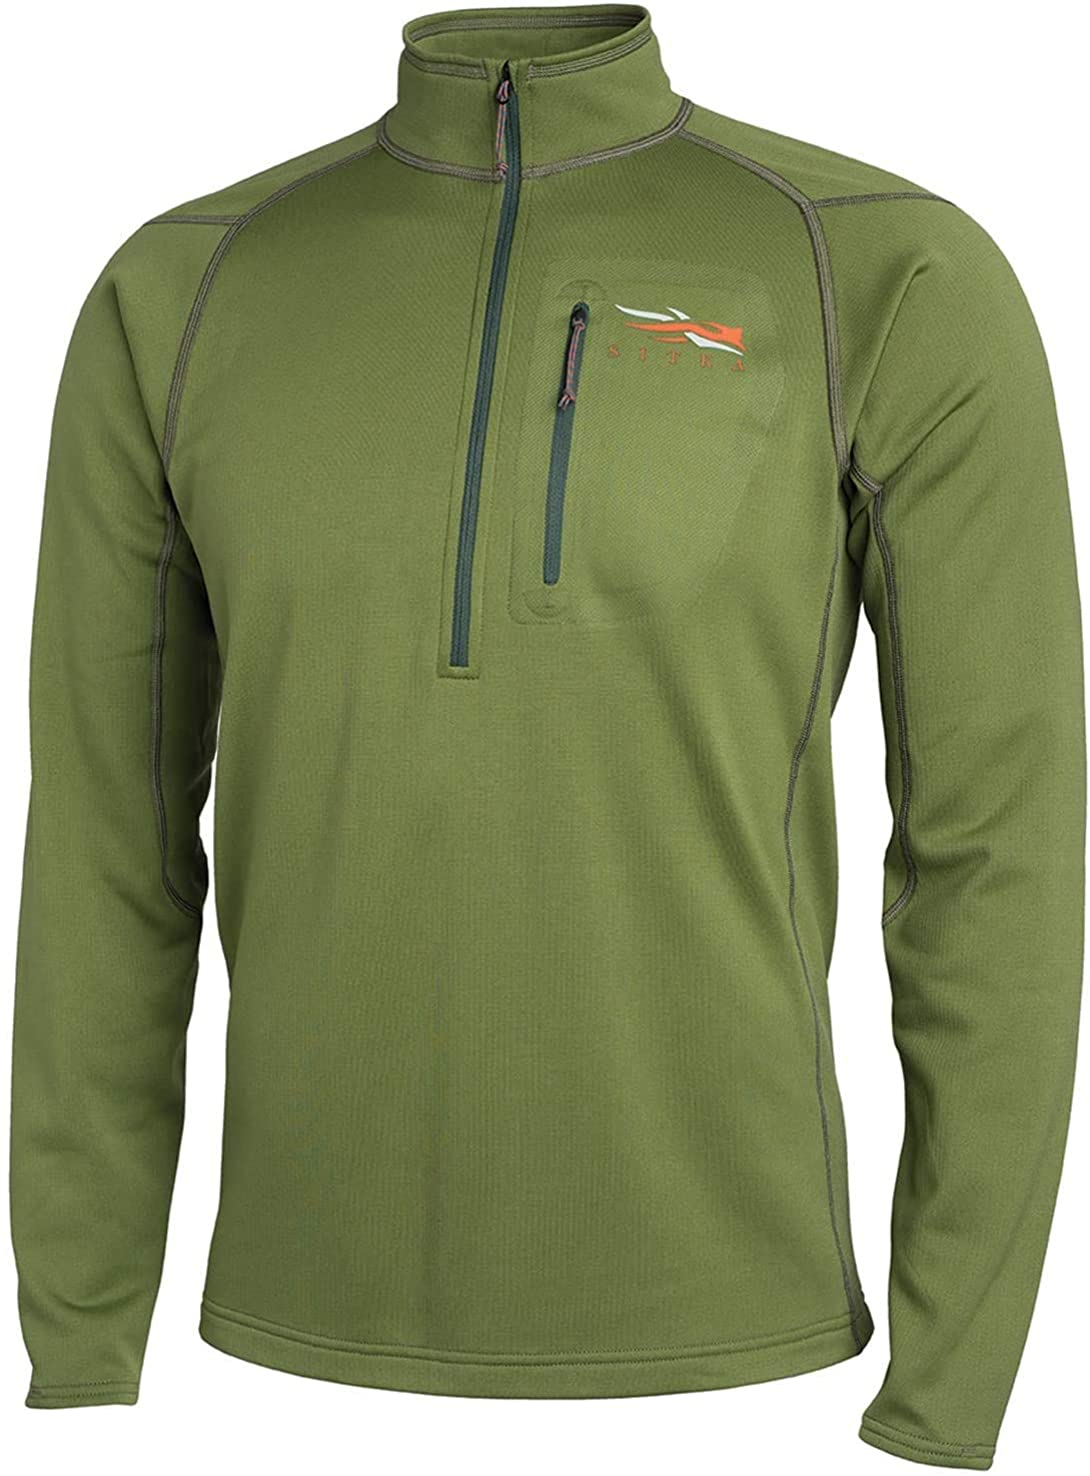 SITKA Gear Men's Core Midweight Zip-T Quick-Dry Odor-Free Long Sleeve Hunting Shirt, Forest, Medium